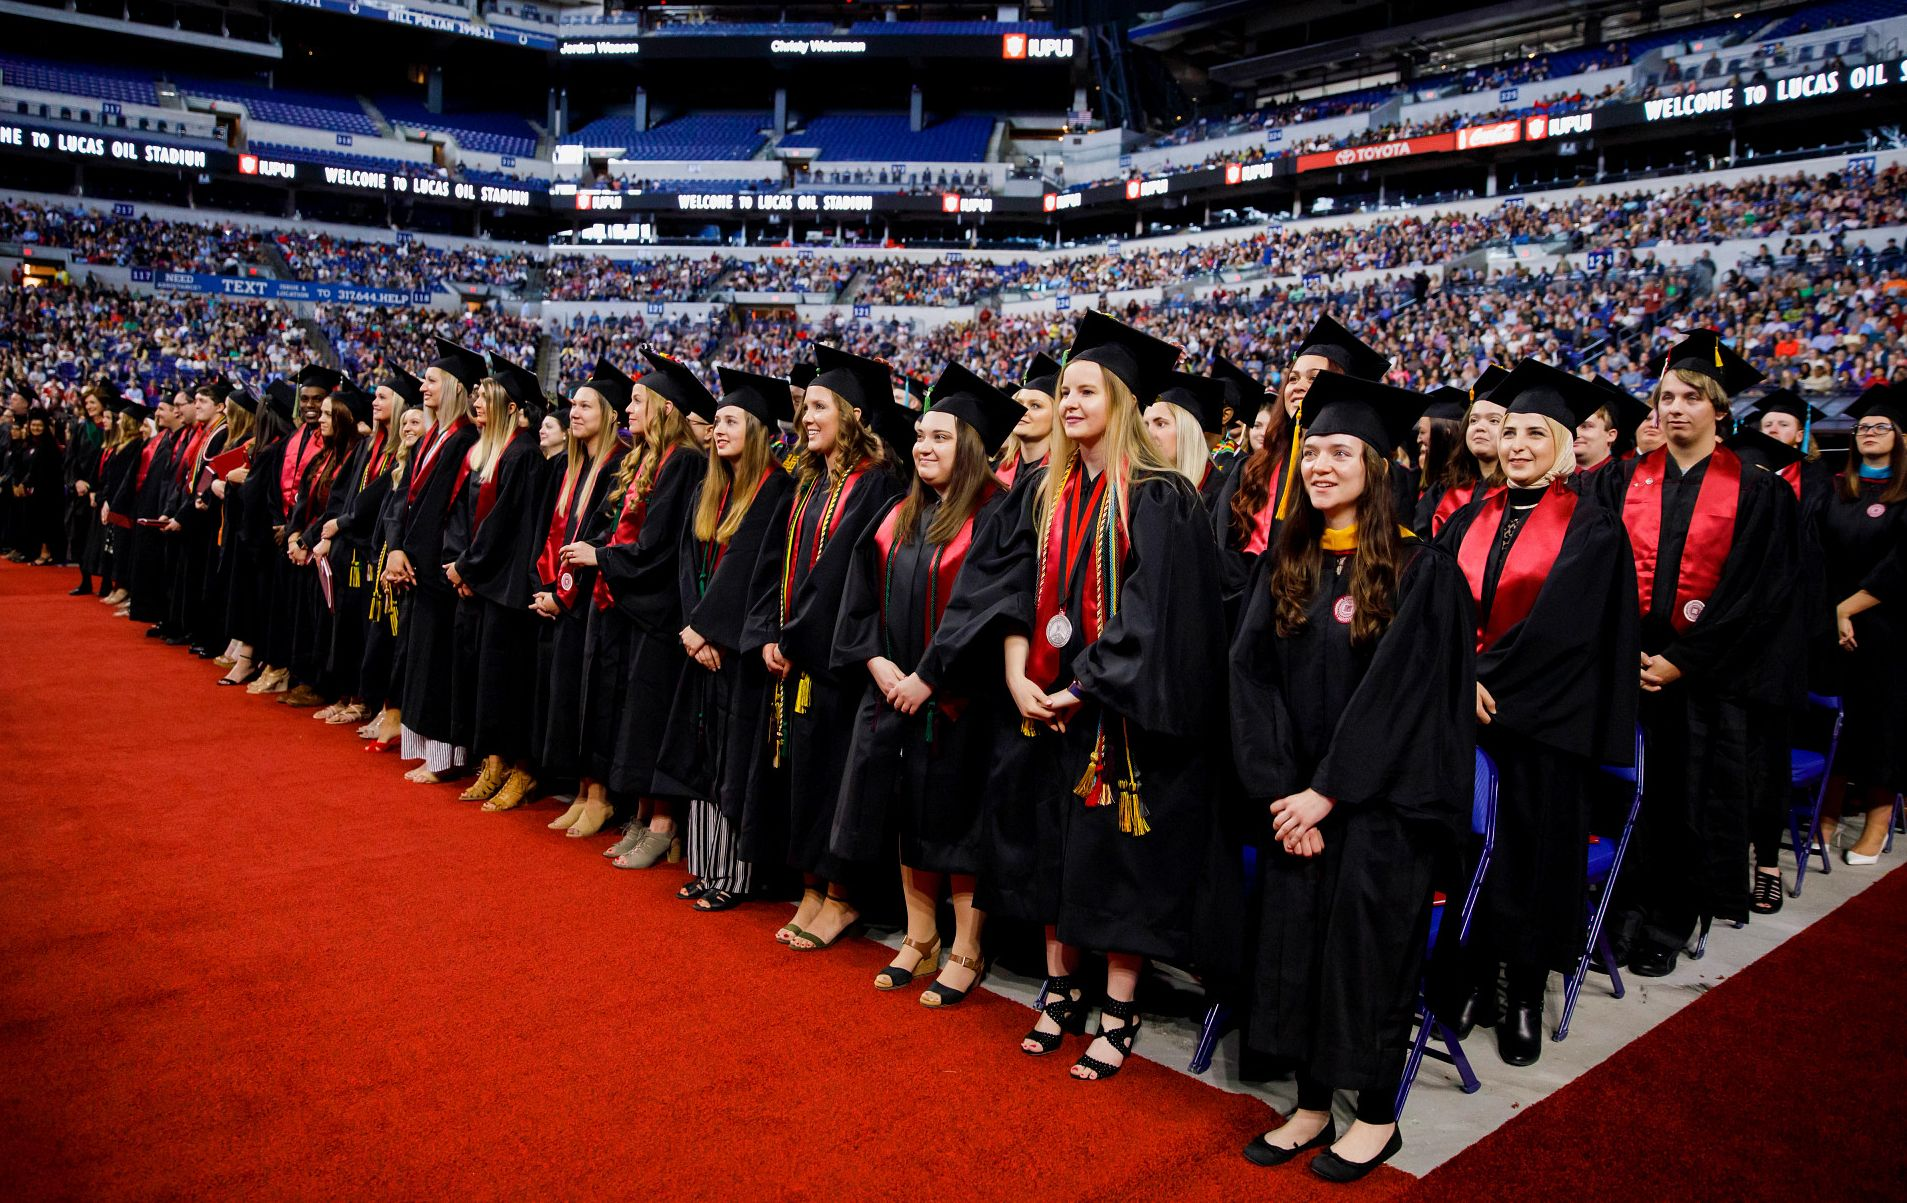 Graduates stand at Lucas Oil Stadium during an IUPUI commencement ceremony.